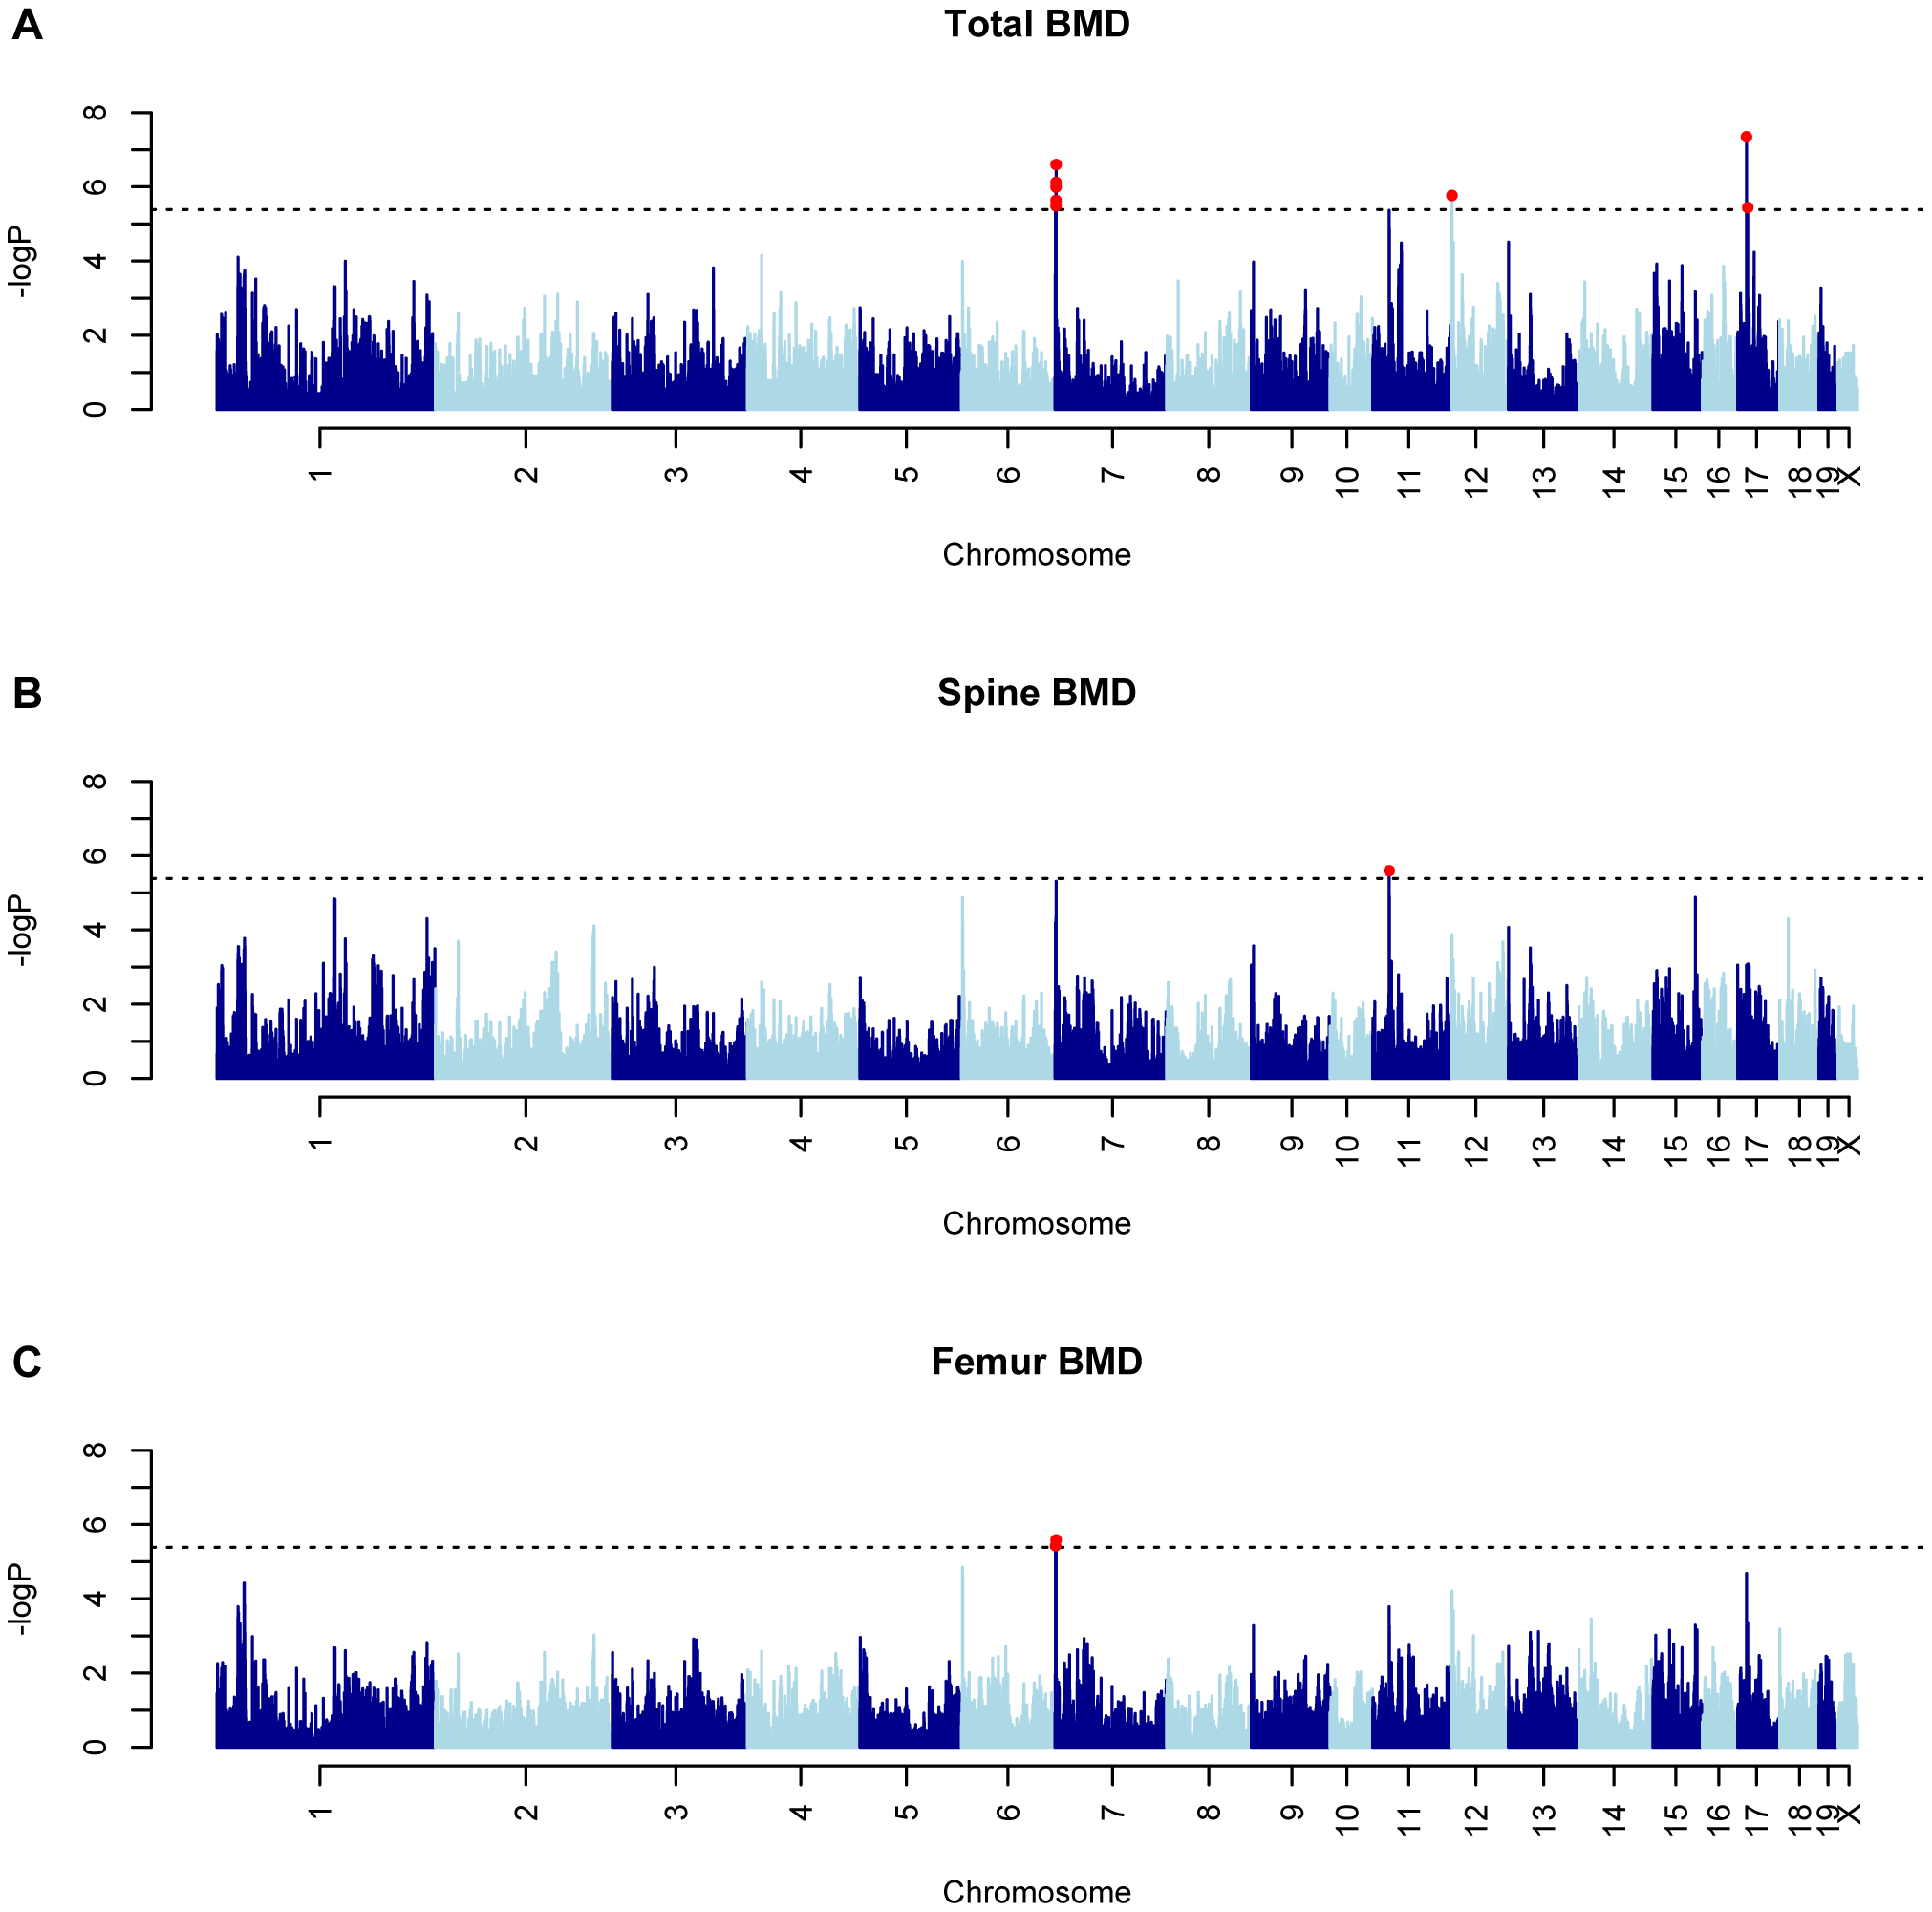 GWAS results for BMD in the HMDP.